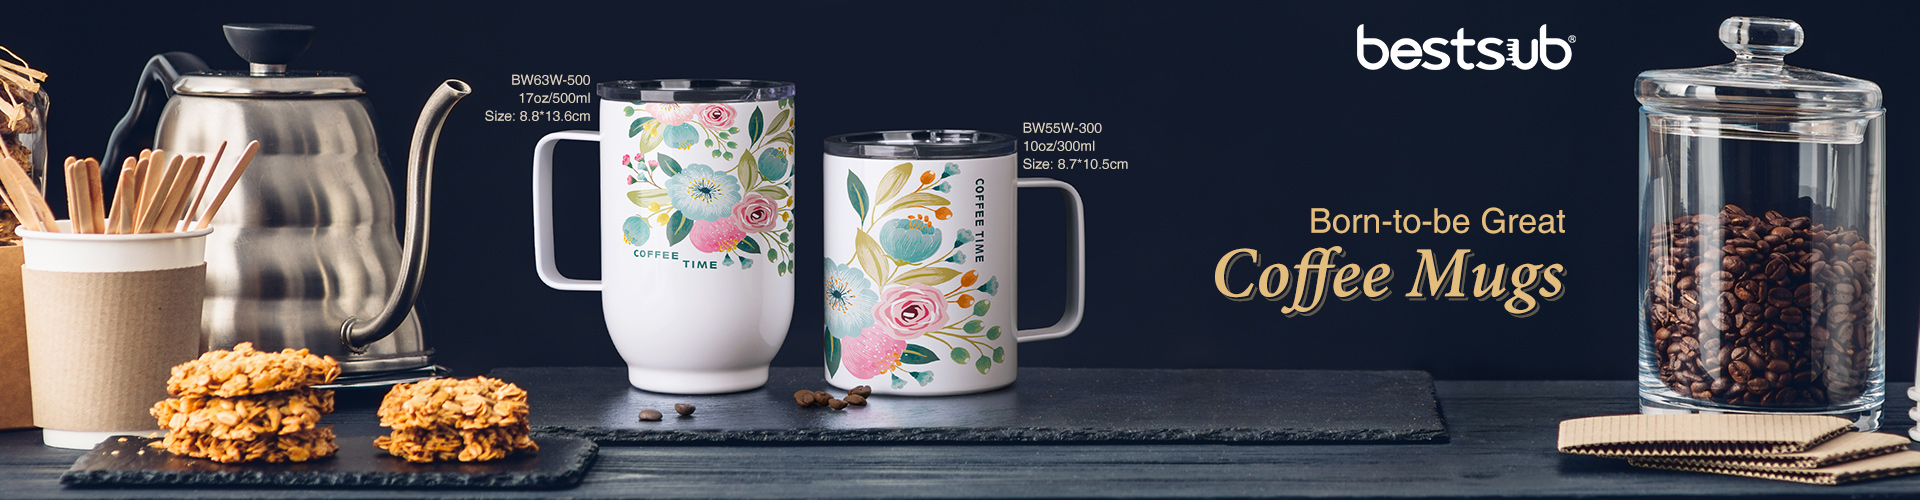 2019-9-30_Born-to-be_Great_Coffee_Mugs_new_web